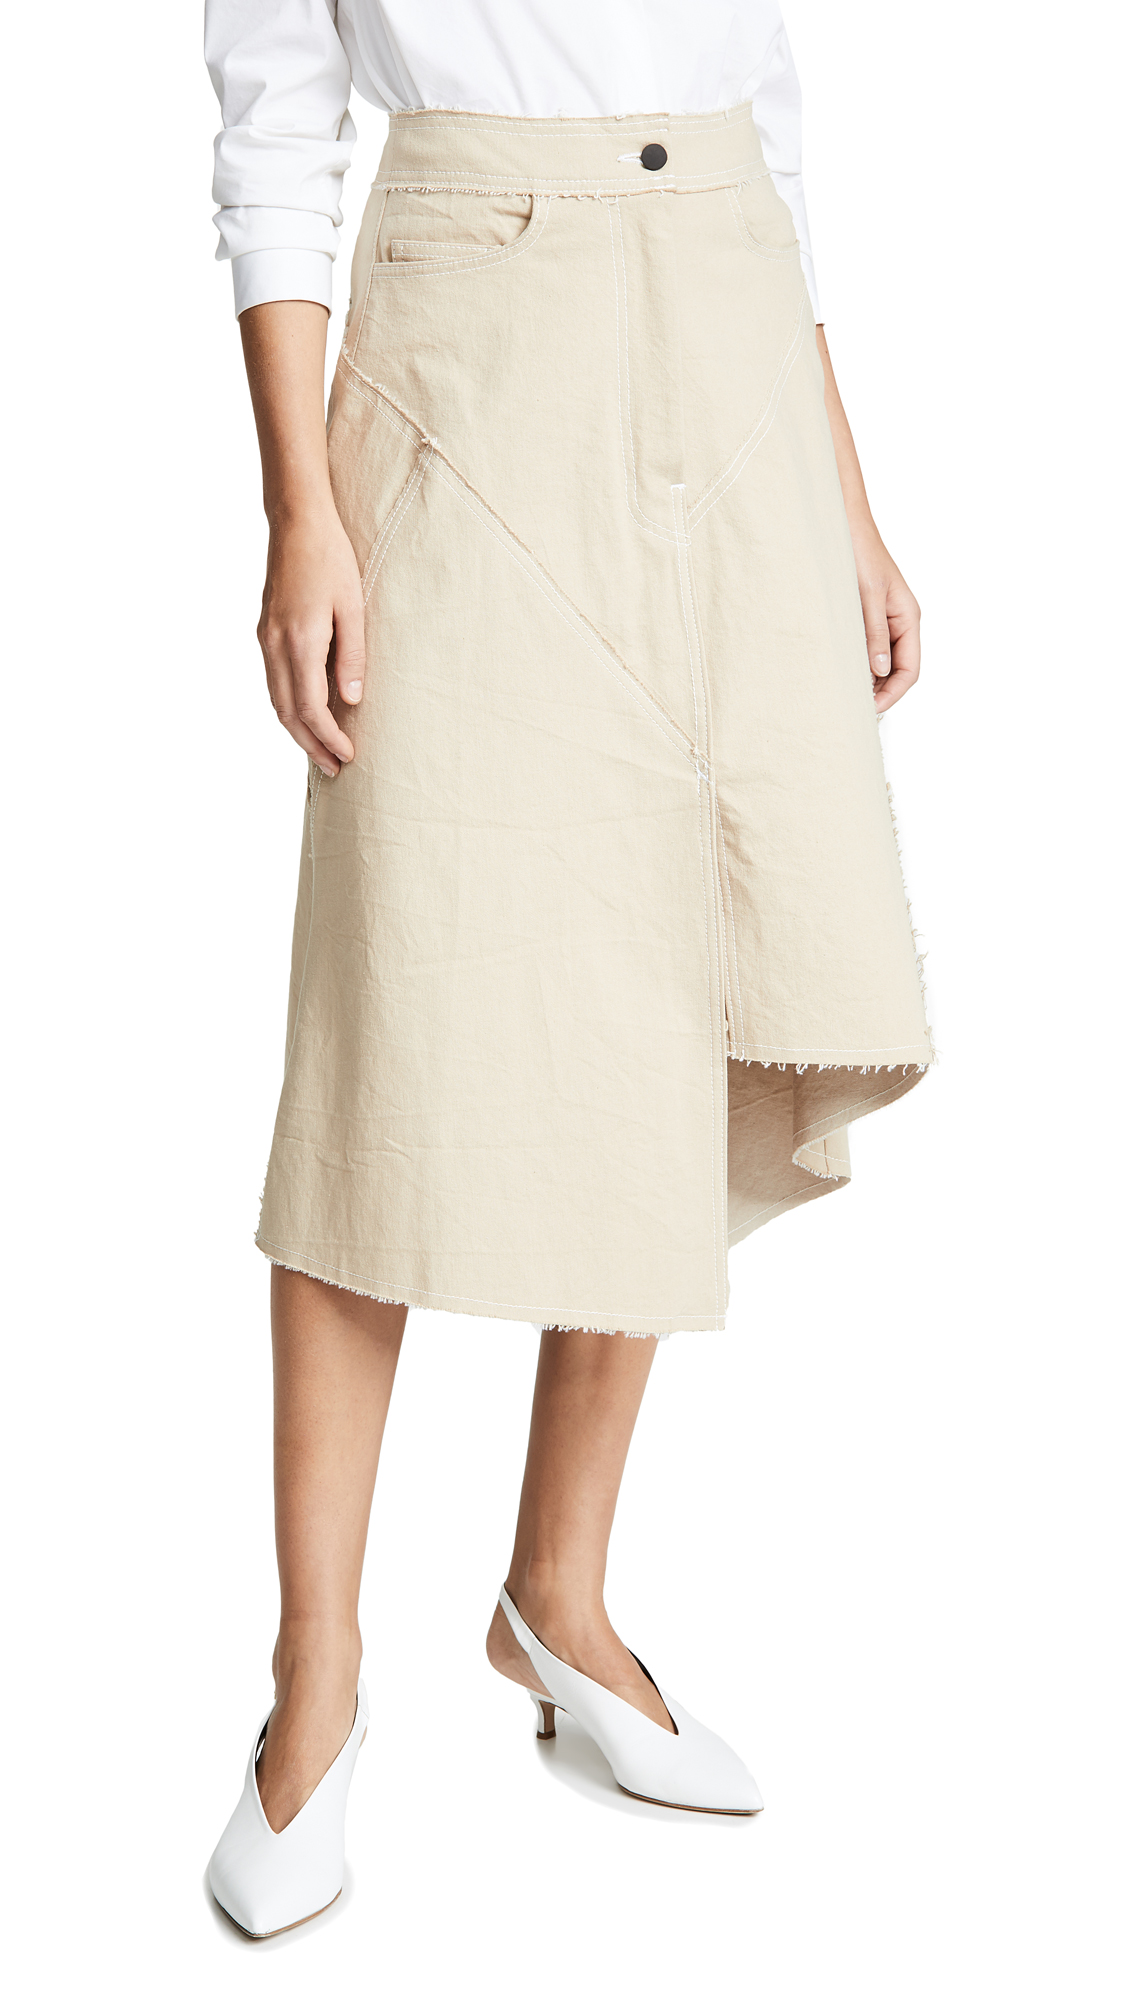 COLOVOS Seamed Skirt in Natural